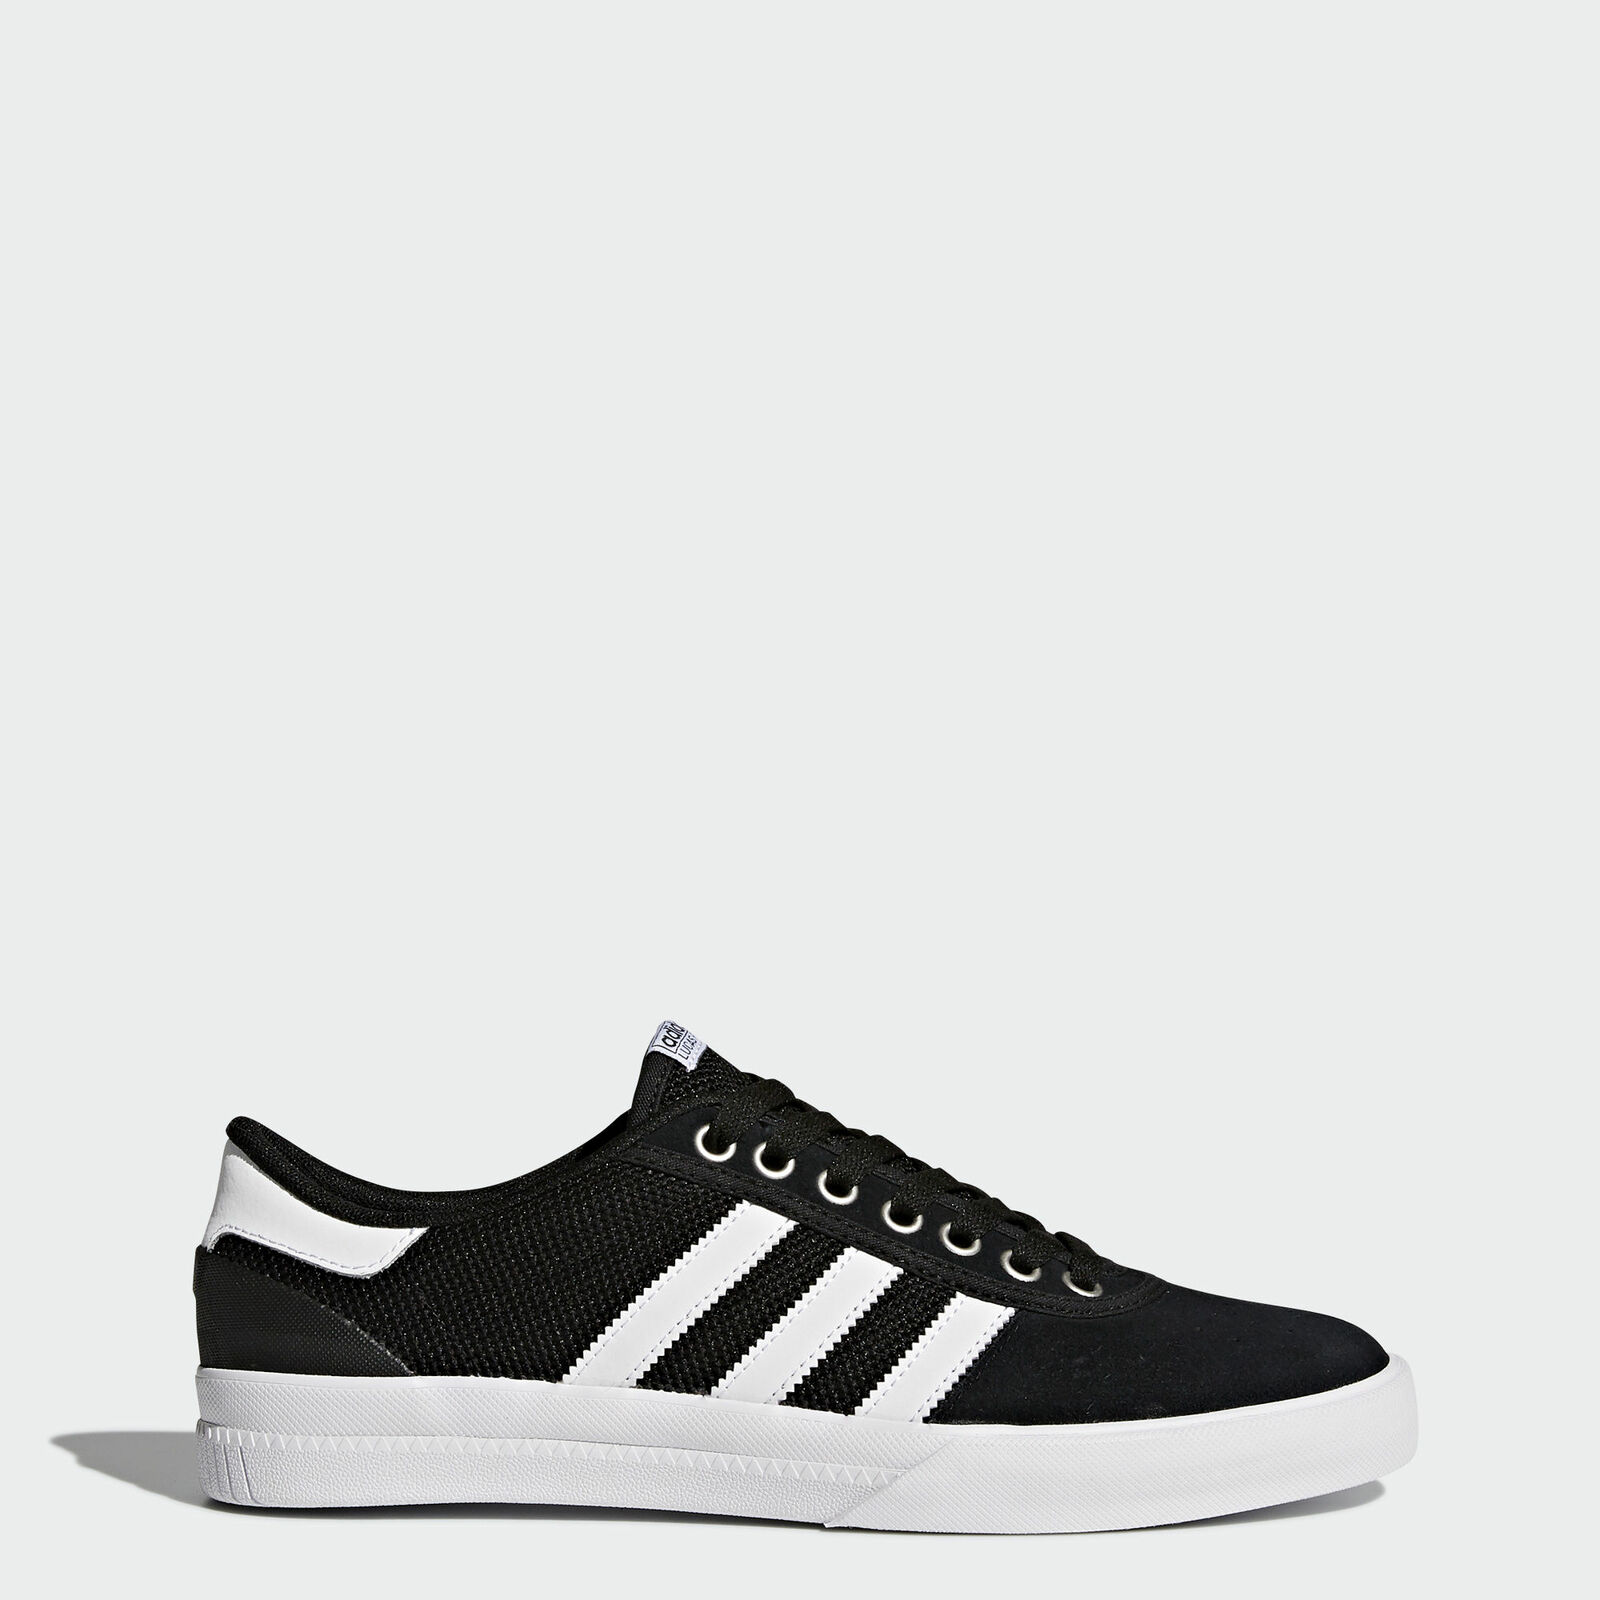 Adidas Lucas Premiere ADV shoes Men's